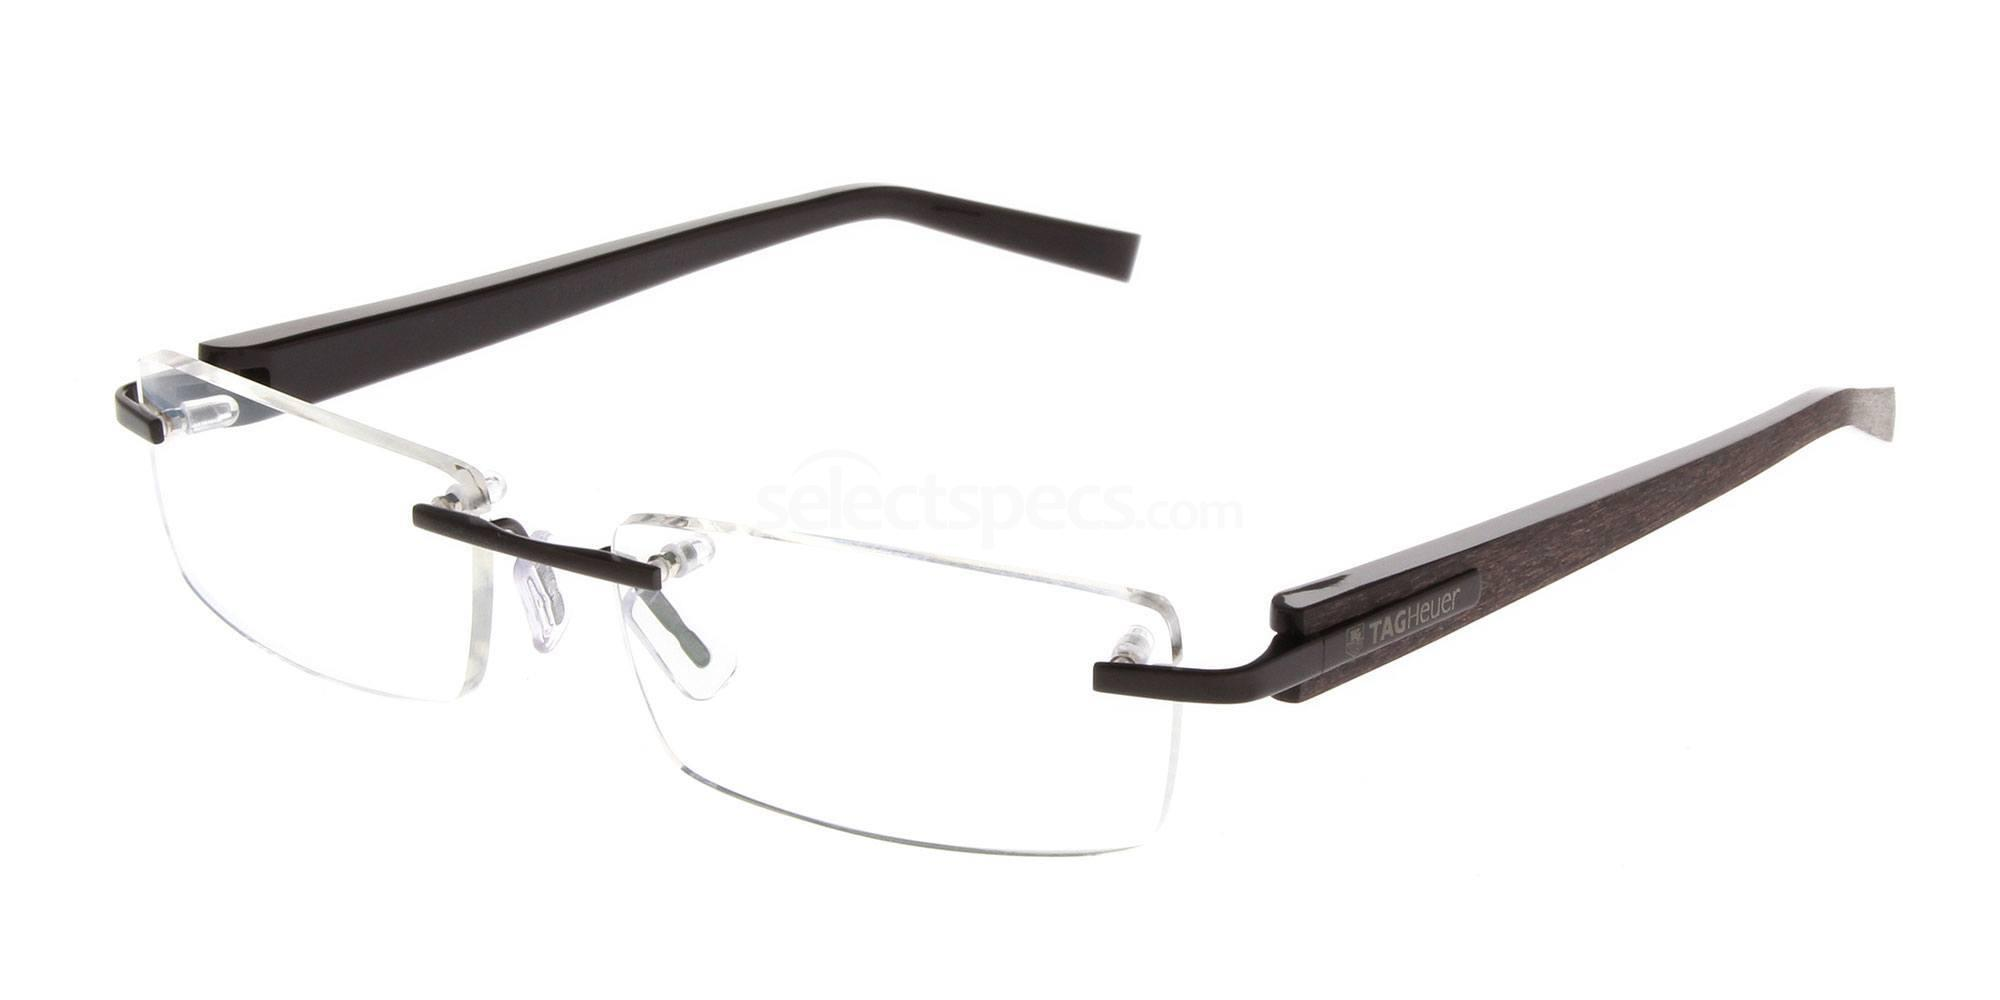 010 Trends Acetate Rimless 8103 Glasses, TAG Heuer